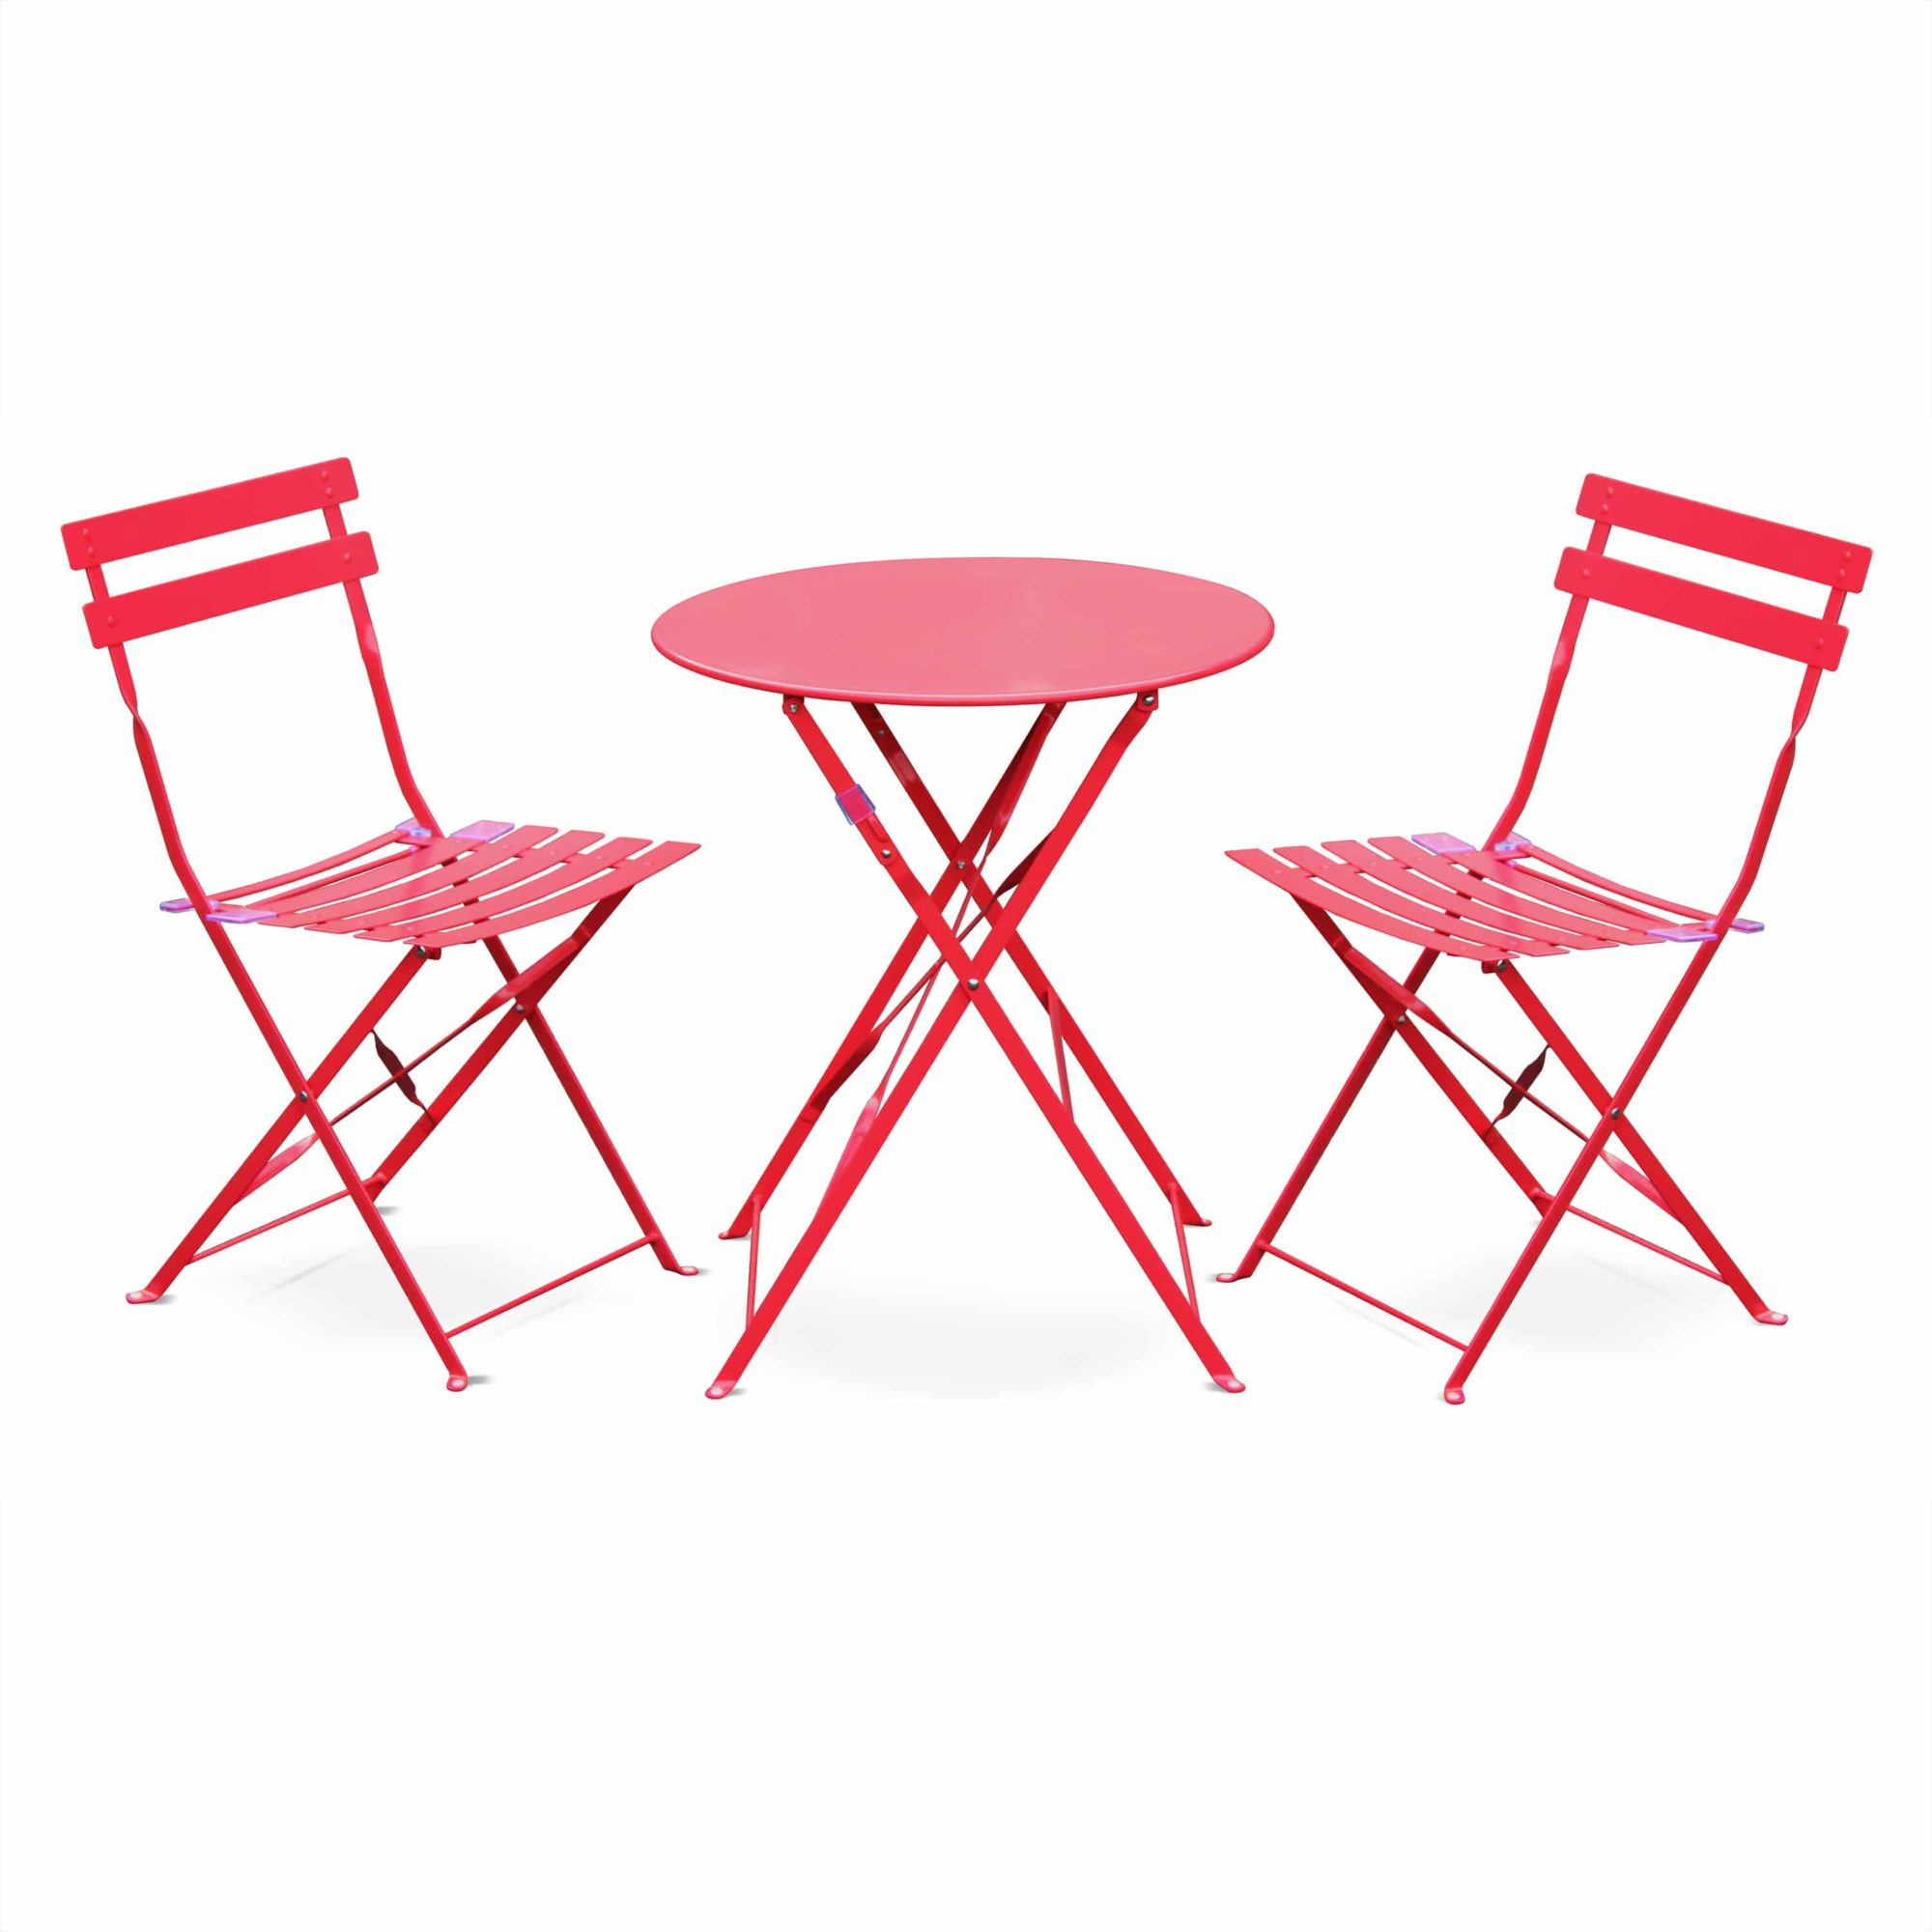 EMILIA -  bistro table set Ø60cm round table set electrophoresis | 3 Colours